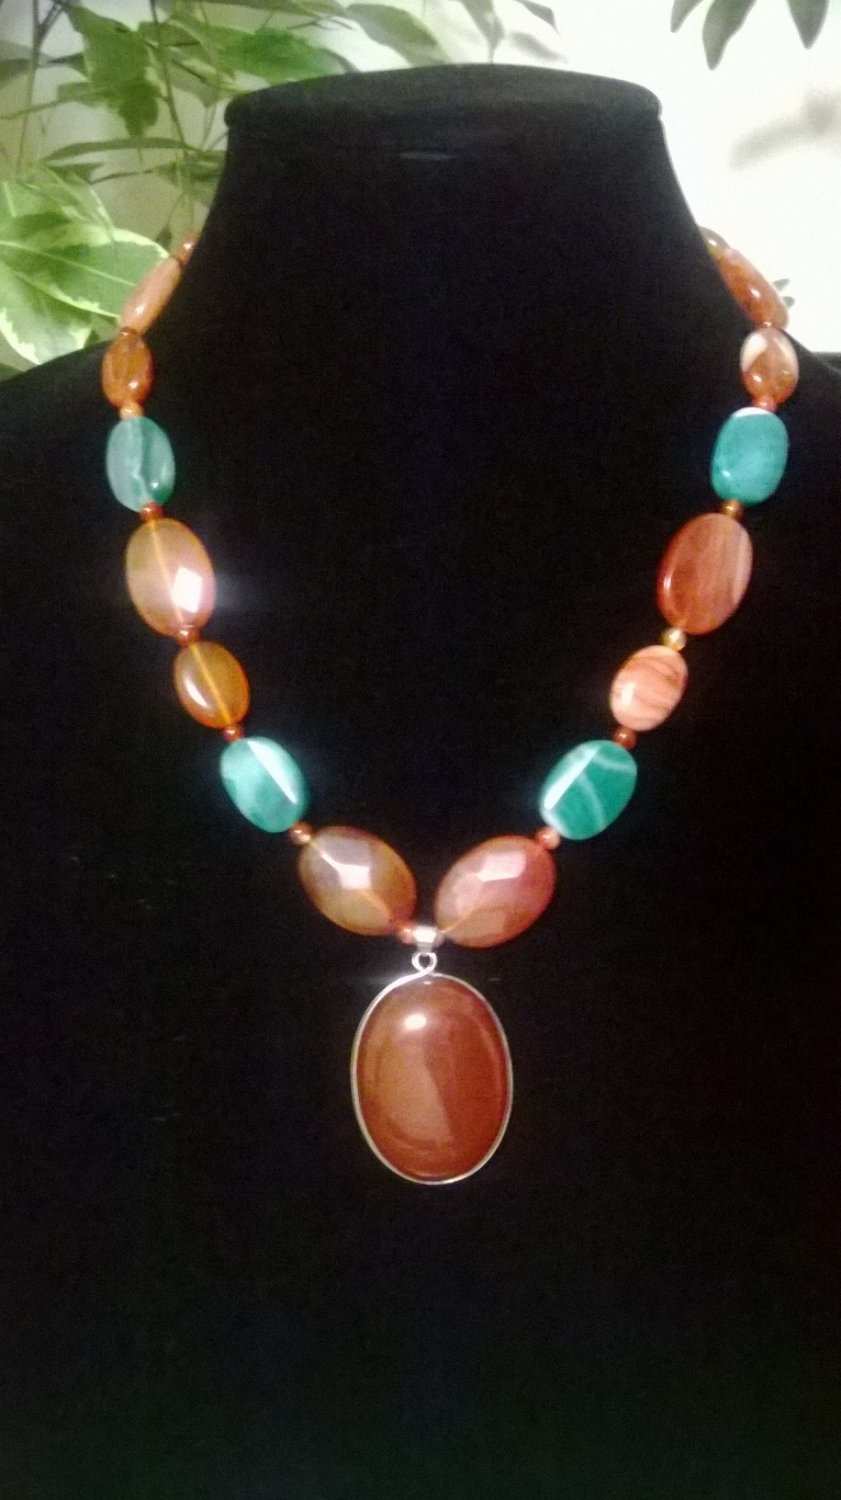 Carnelian, Agate & Green Banded Agate  Necklace & Pendant